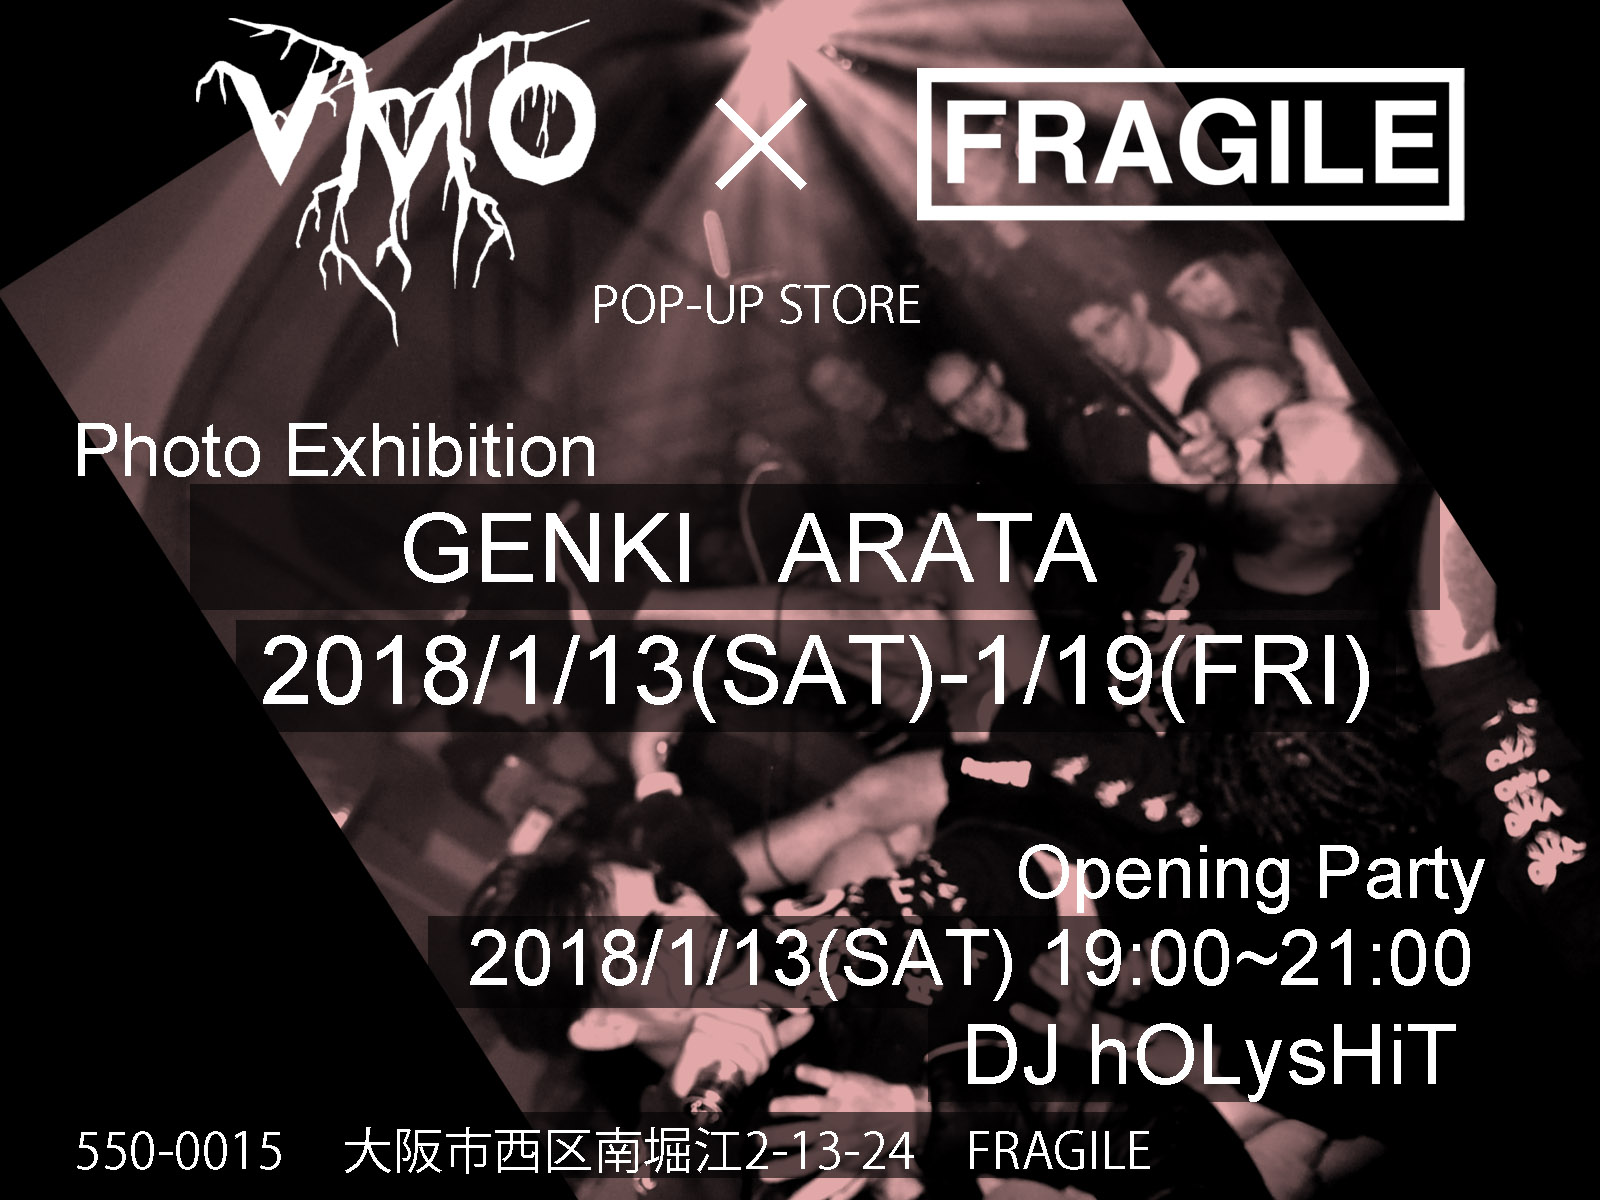 VMO × FRAGILE POP-UP STORE